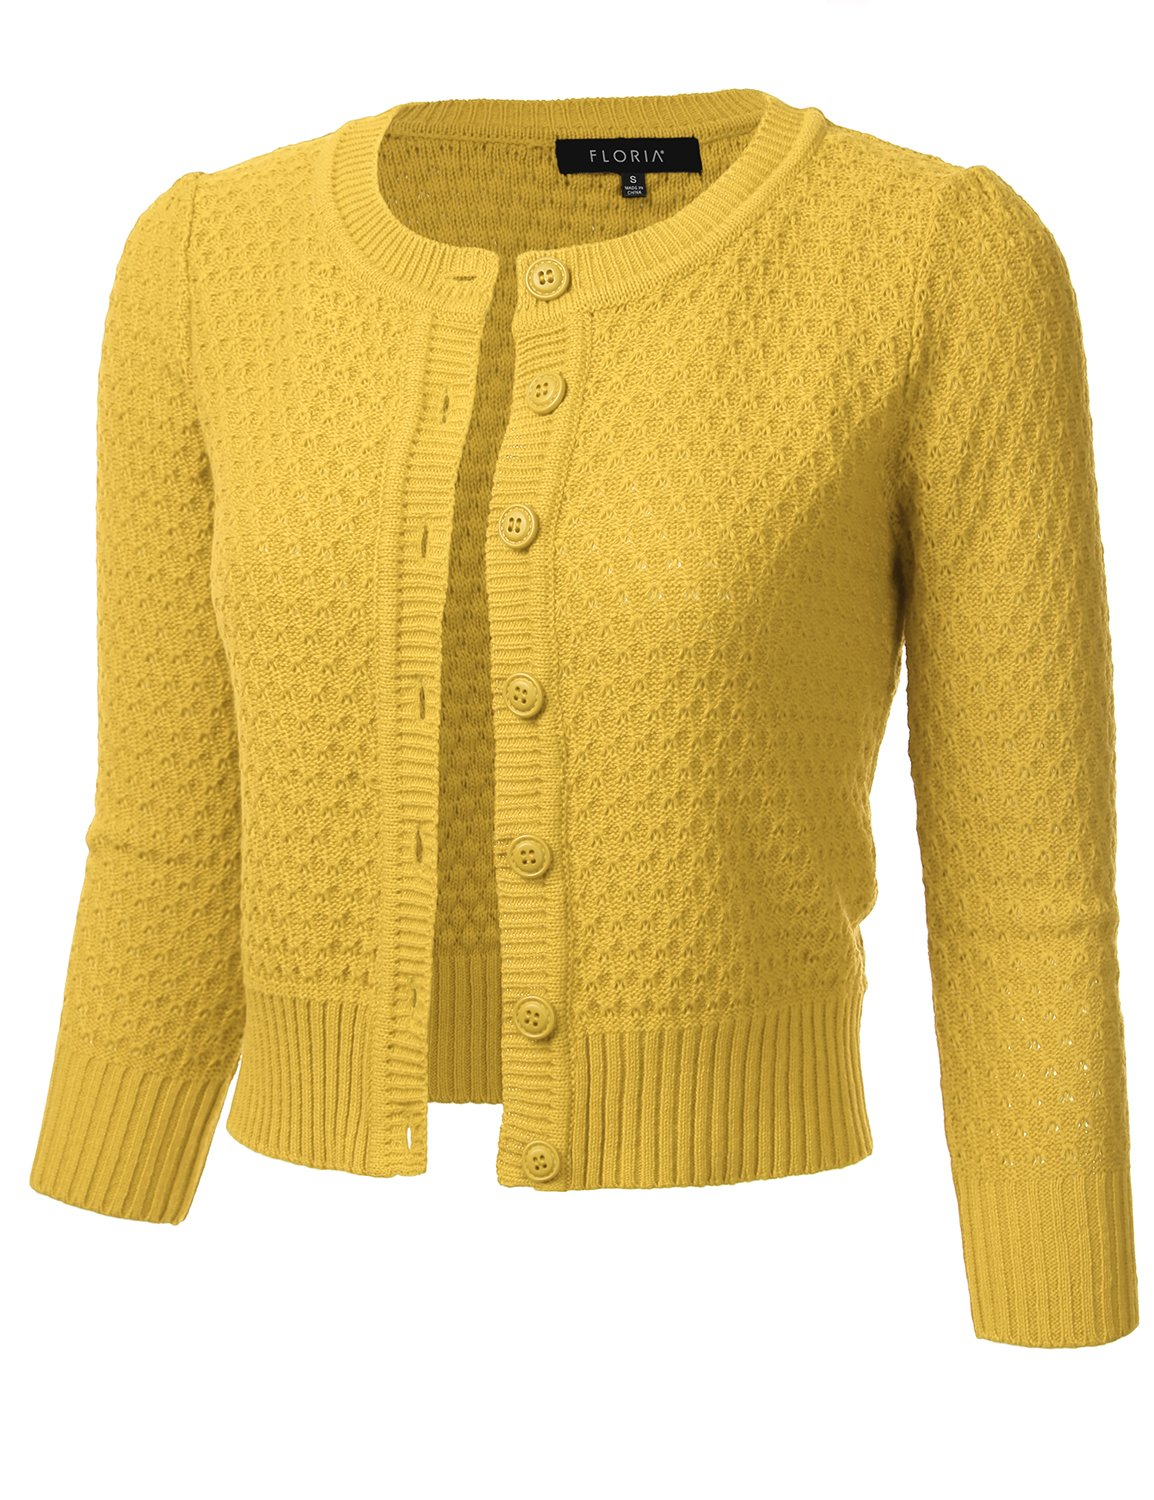 FLORIA Womens Button Down 3/4 Sleeve Crew Neck Cotton Knit Cropped Cardigan Sweater Honey L